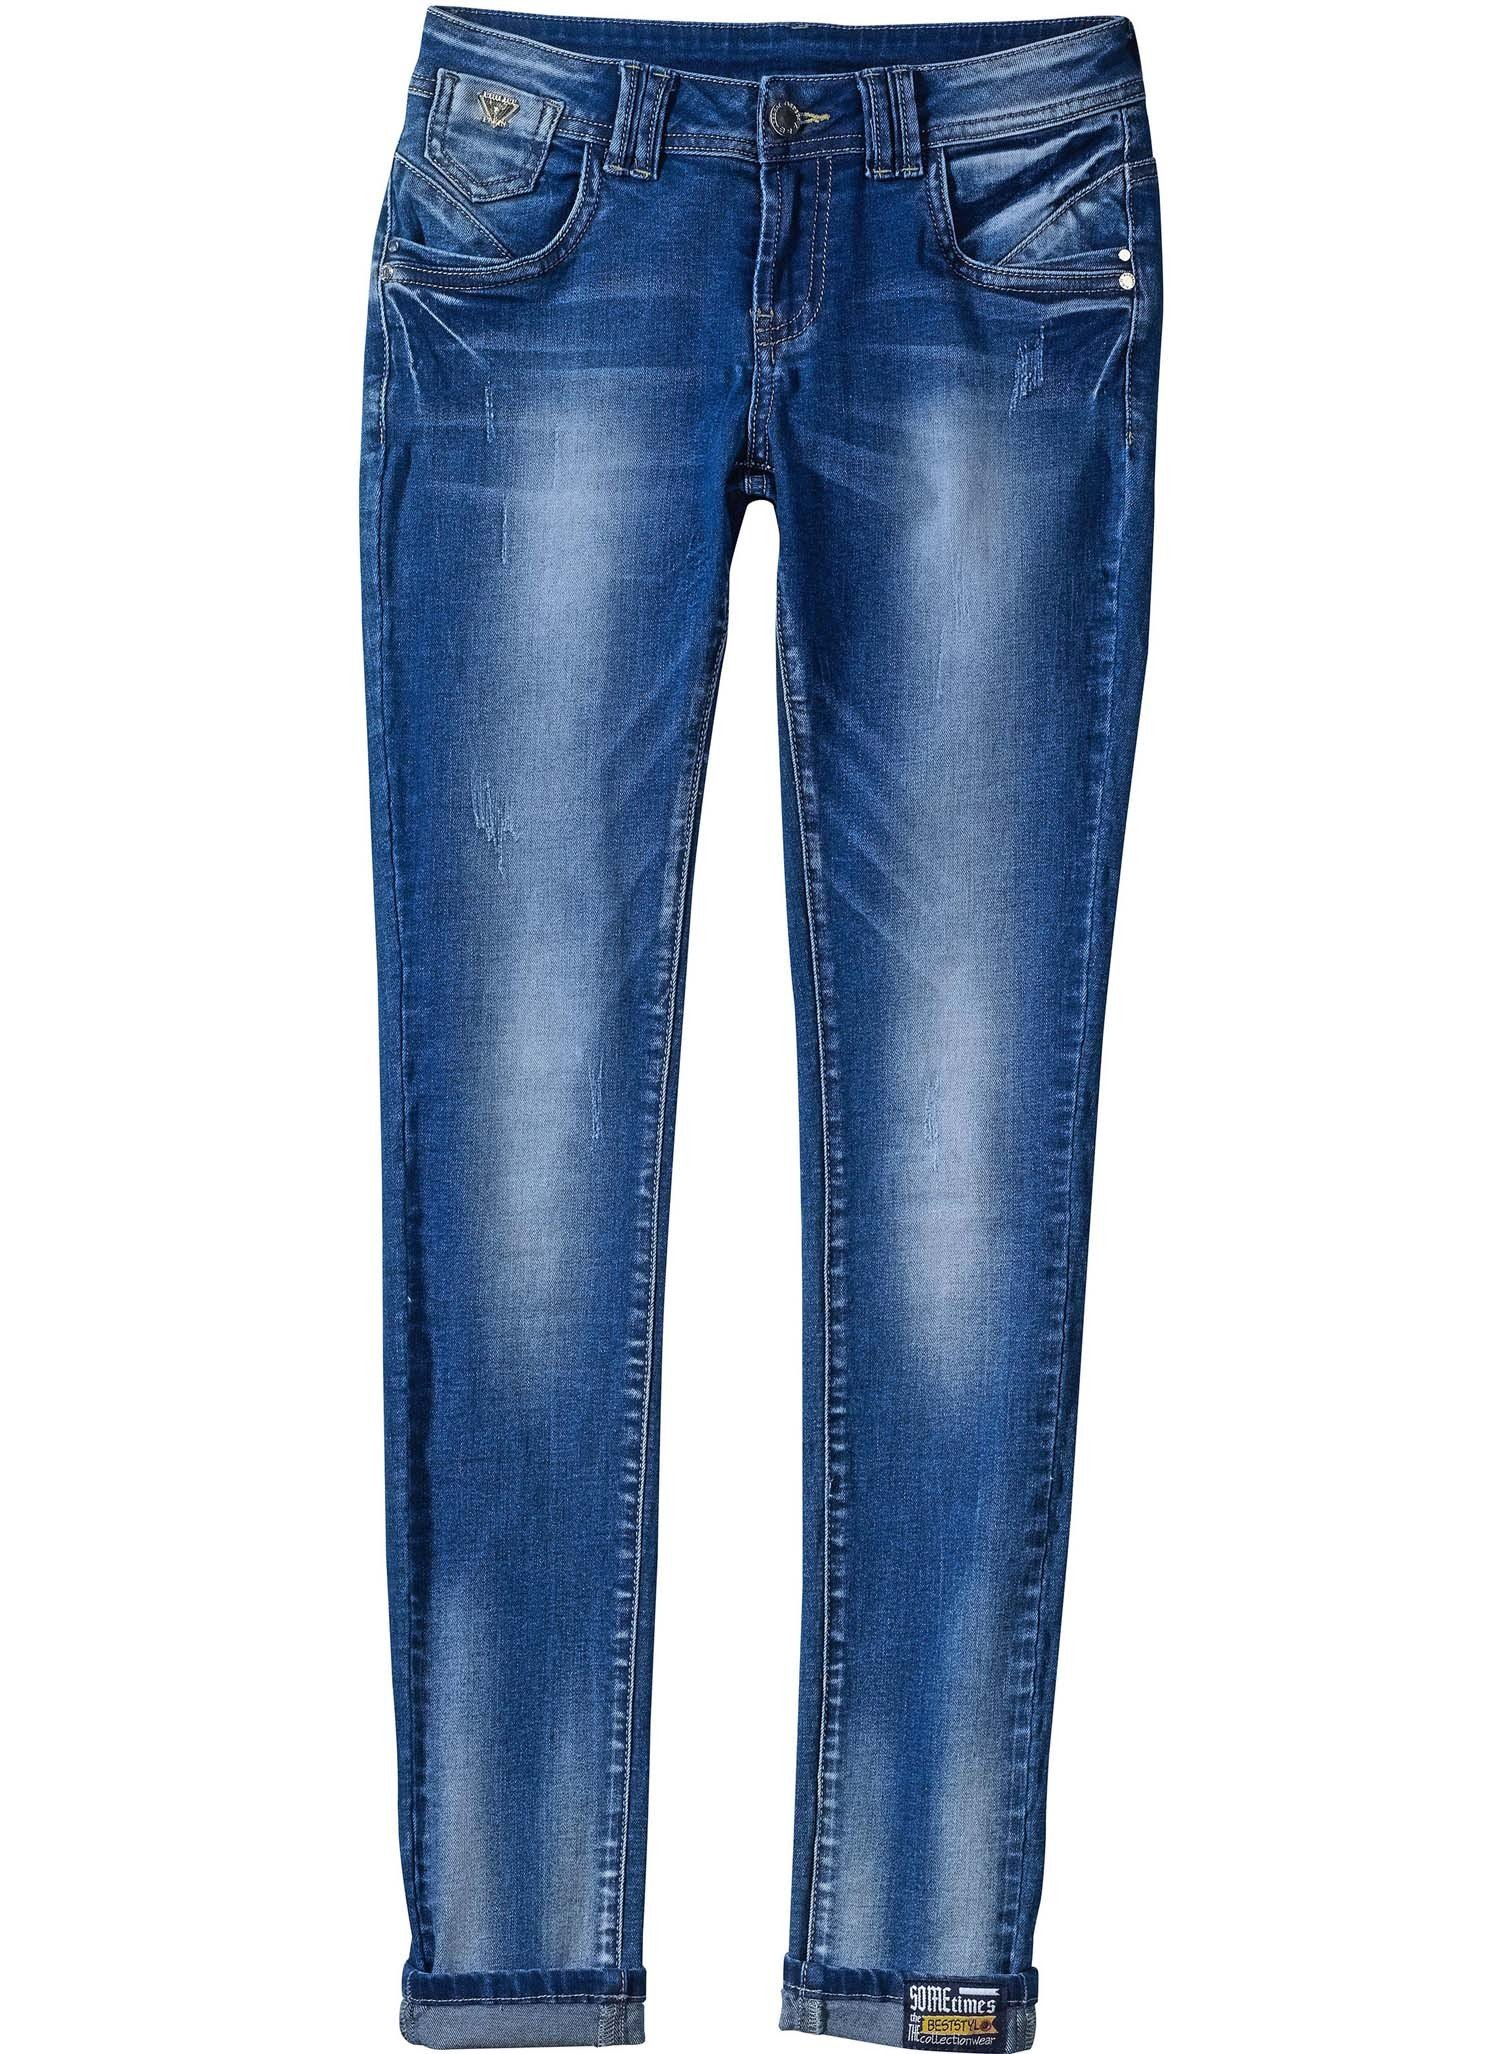 "D-5P.Jeans""SOME-TIME""Blue-Dem. 34 050 - 2 - Ronja.ch"